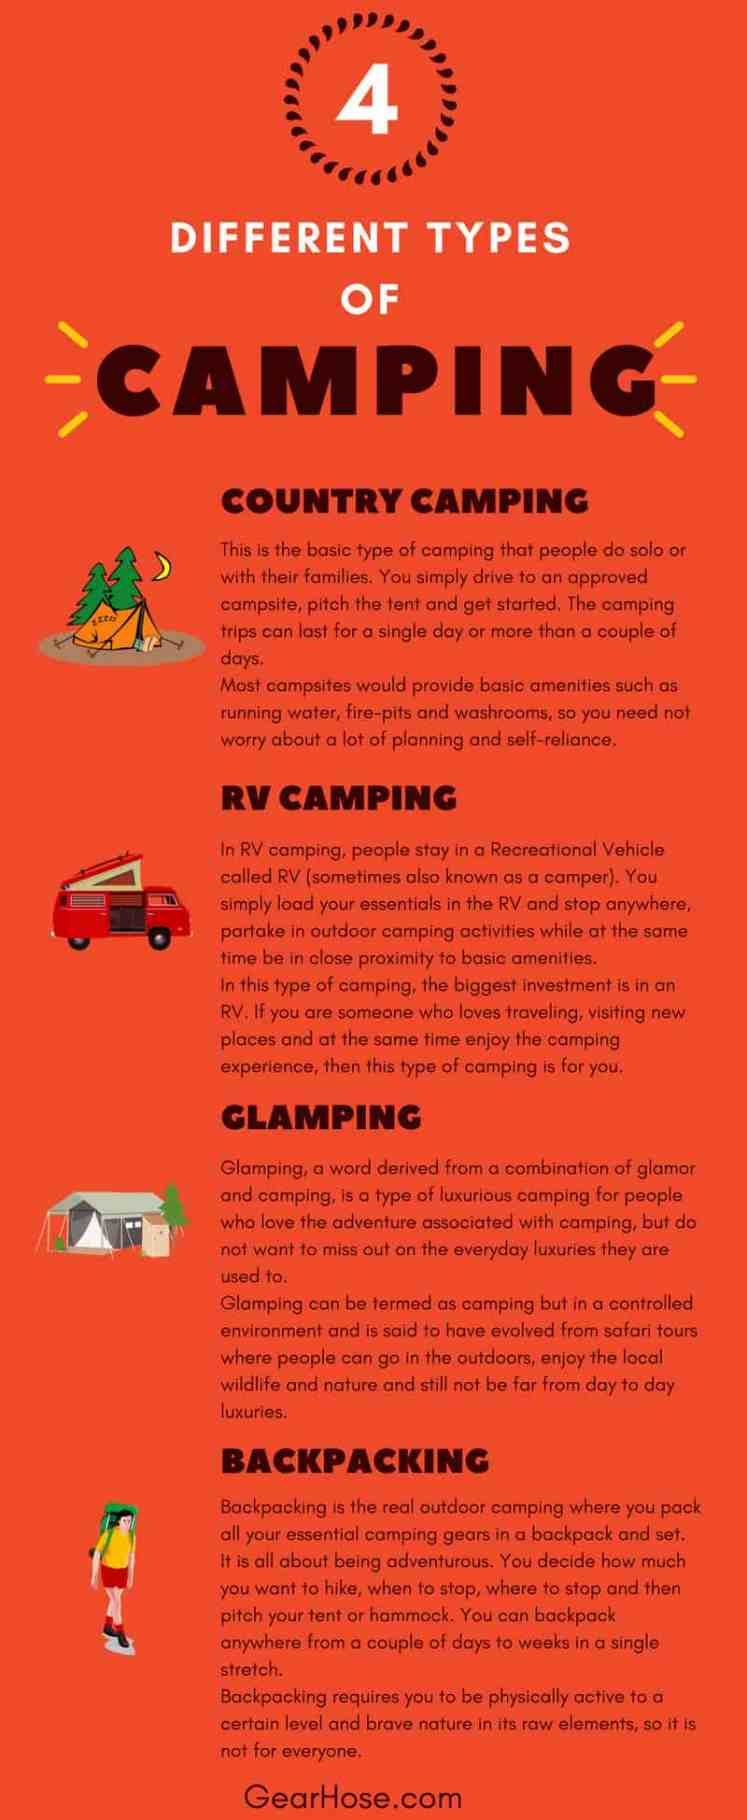 Different types of camping